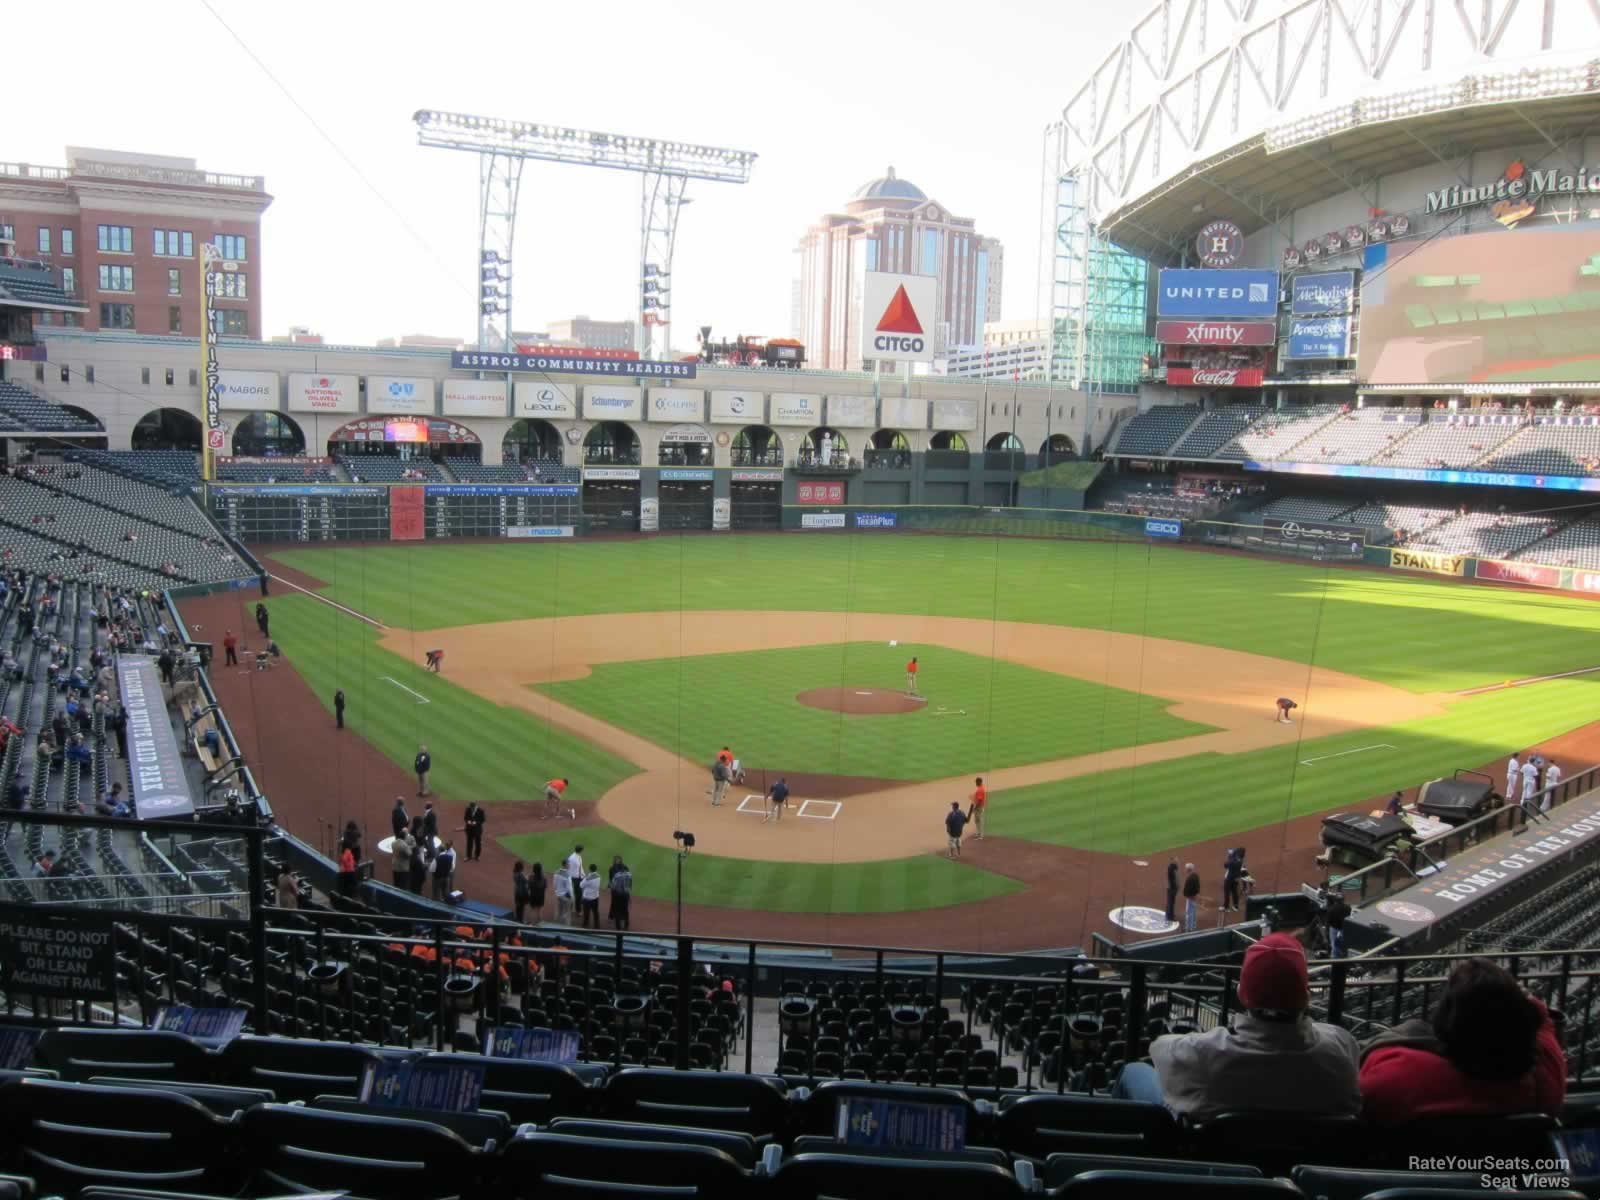 Seat View for Minute Maid Park Section 220, Row 6